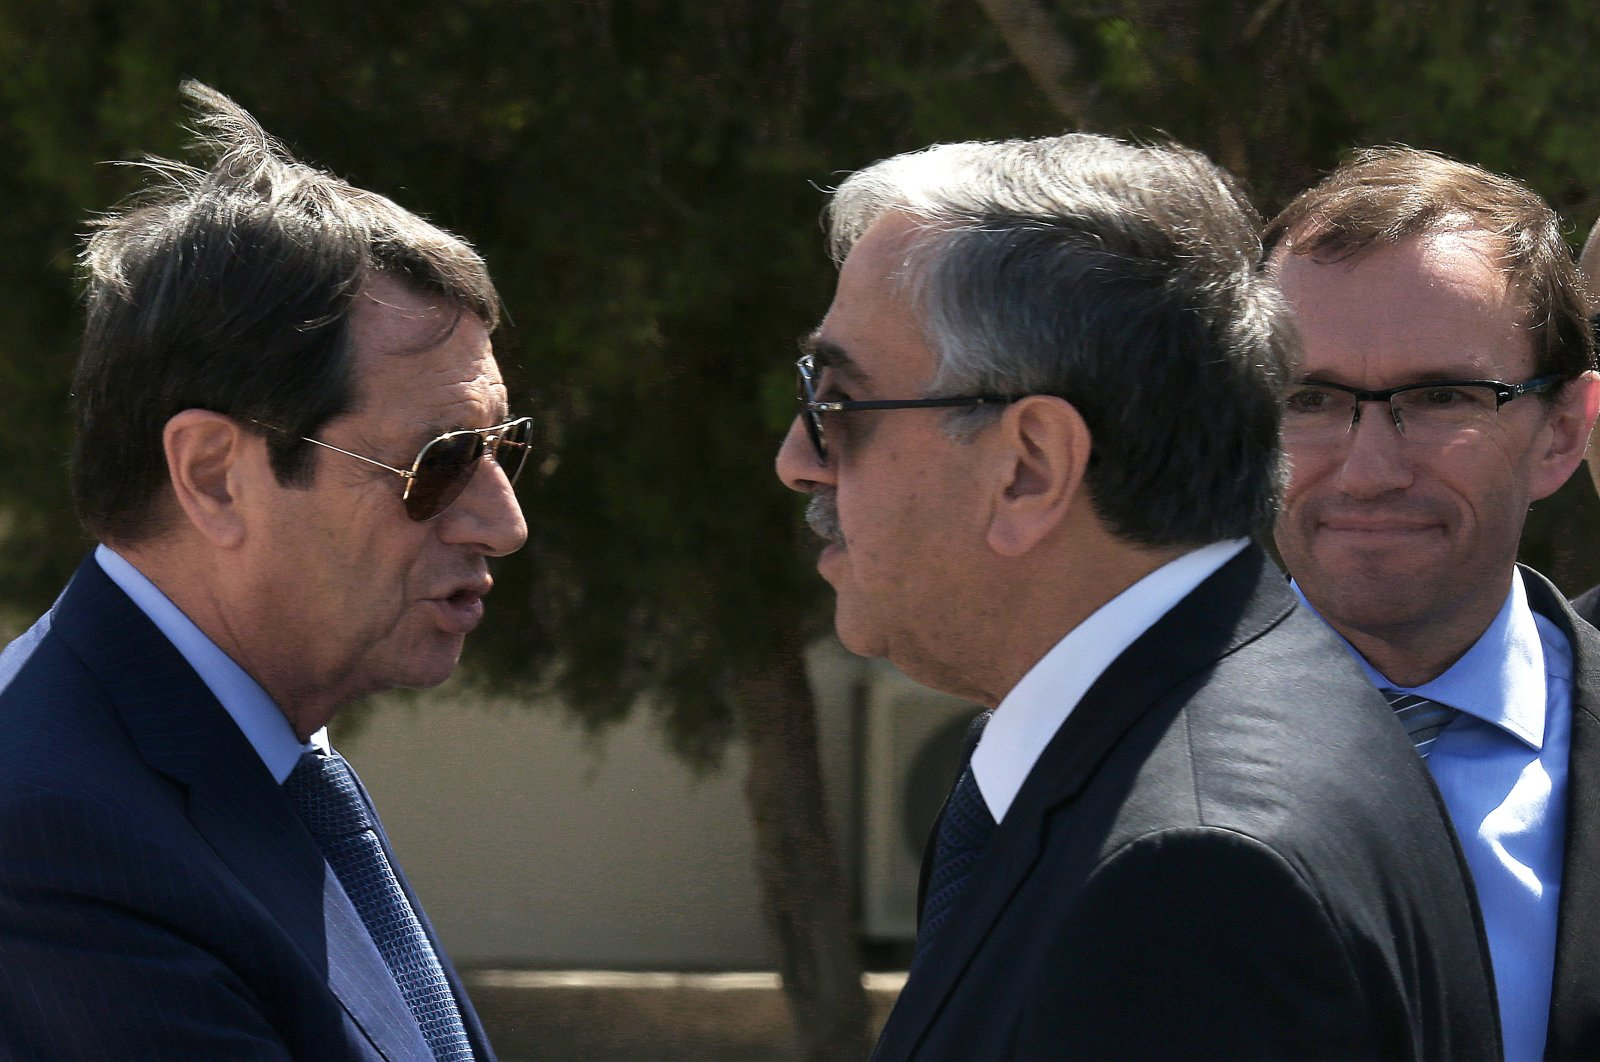 Greek Cypriot leader Nicos Anastasiades (L) and Turkish Republic of Northern Cyprus (TRNC) President Mustafa Akıncı (C) talk as U.N. Special Advisor of the Secretary-General Espen Barth Eide looks on as they leave talks aimed at reunifying the ethnically divided island, Sept. 14, 2016. (AP photo)